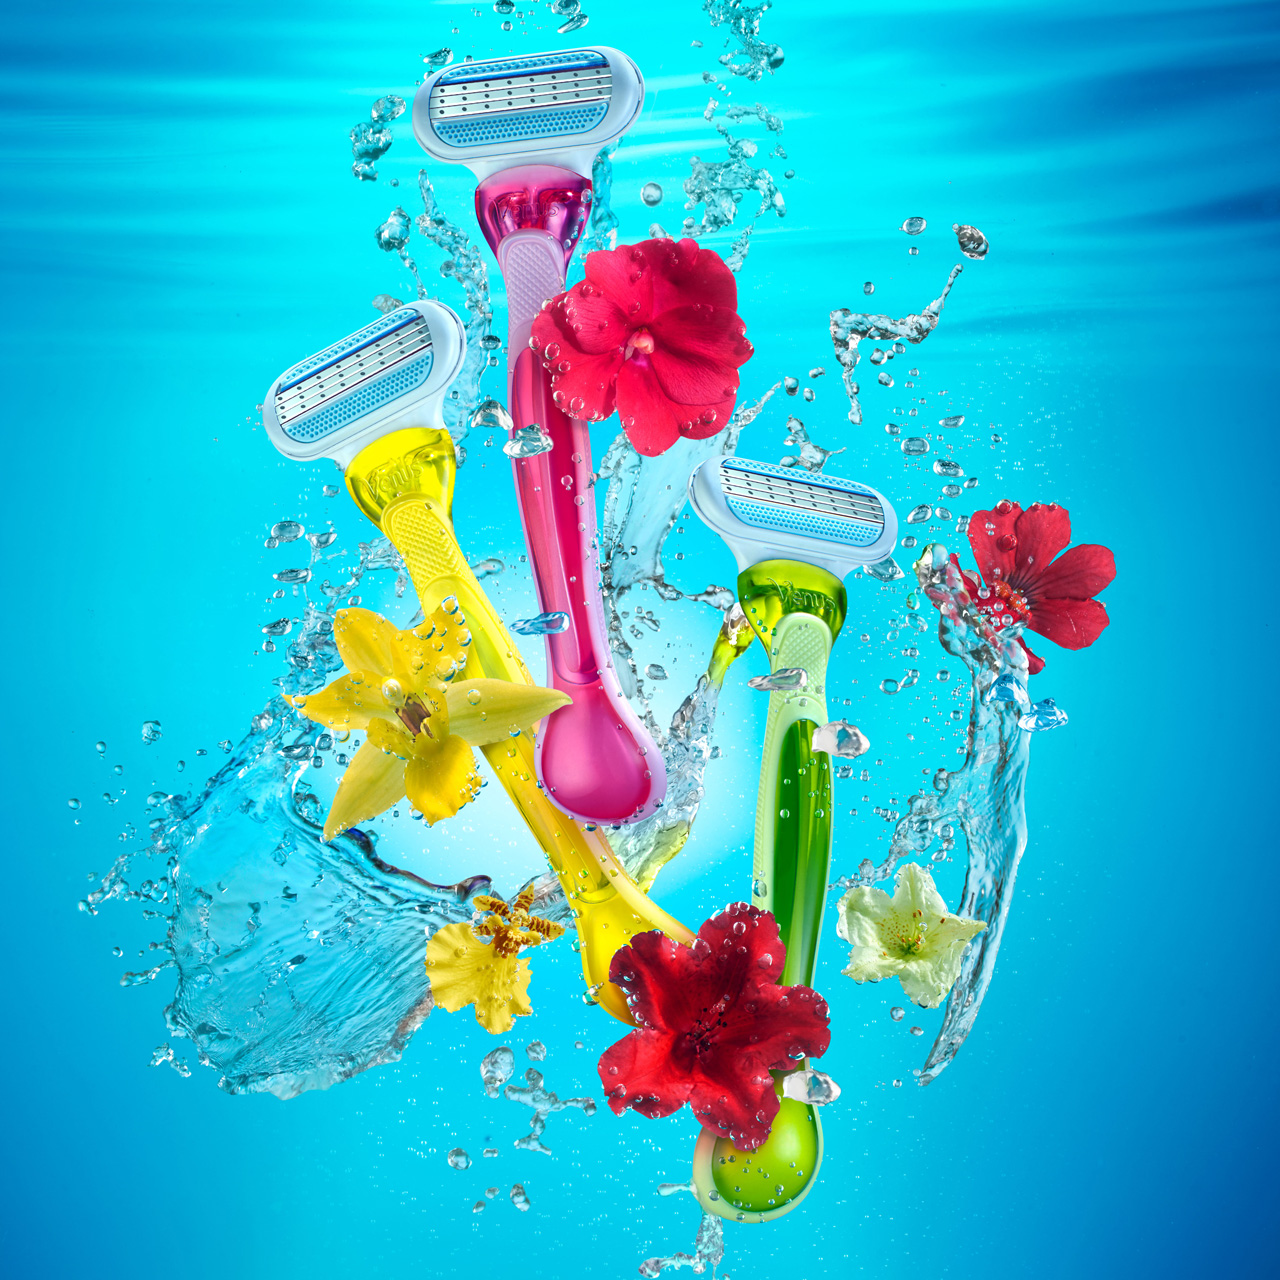 3 shaver with flowers floating under water